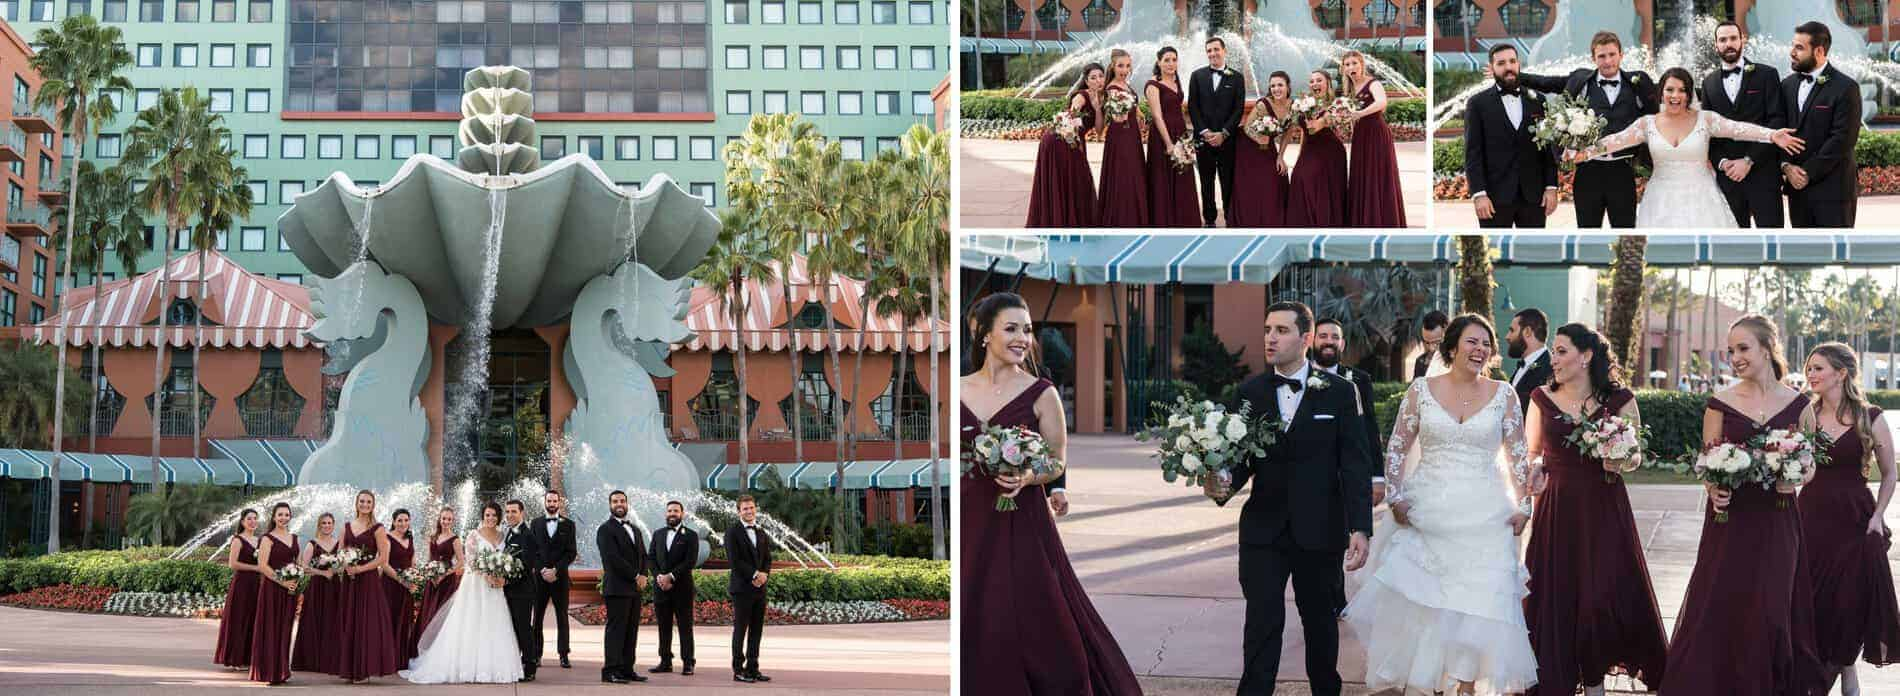 Fun Bridal Party Photos at Disney Swan and Dolphin